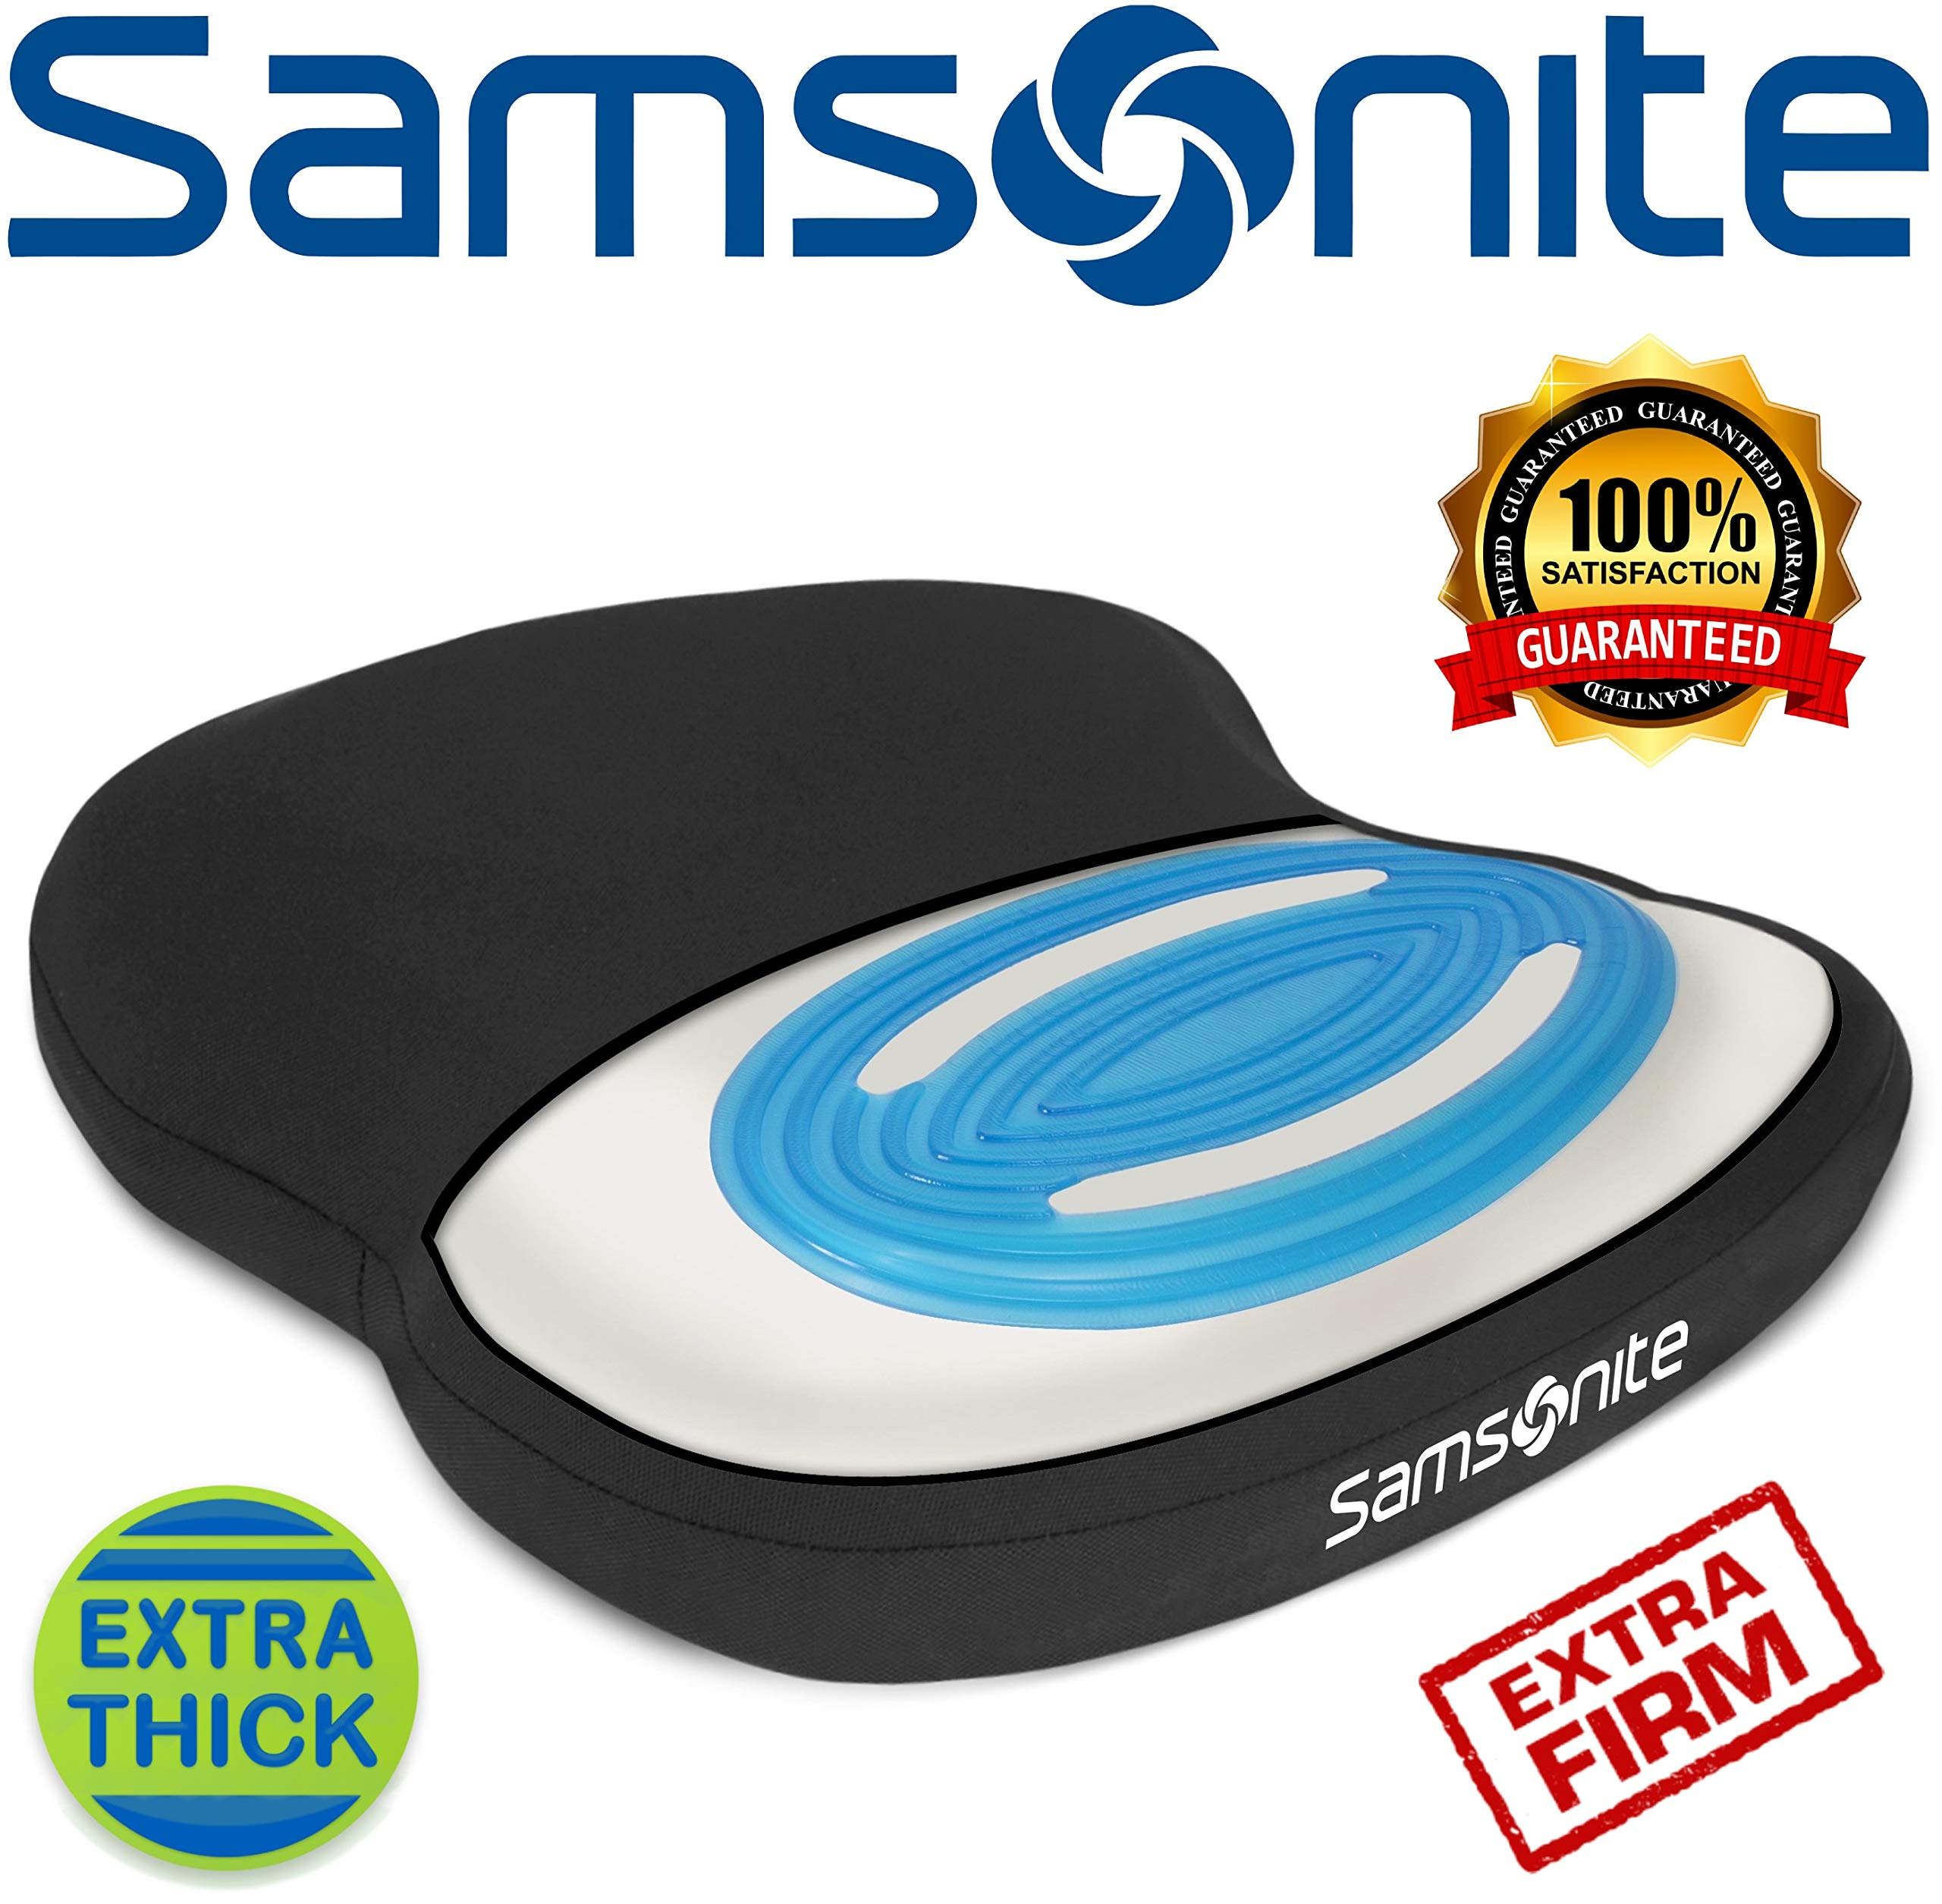 Samsonite SA6020 -  Extra Firm & Thick Seat Cushion with Cooling Gel [Cooling effect is subjective, and varies by personal sensitivity] - Premium Memory Foam - Fits Most Seats - Non-Slip Bottom by Samsonite